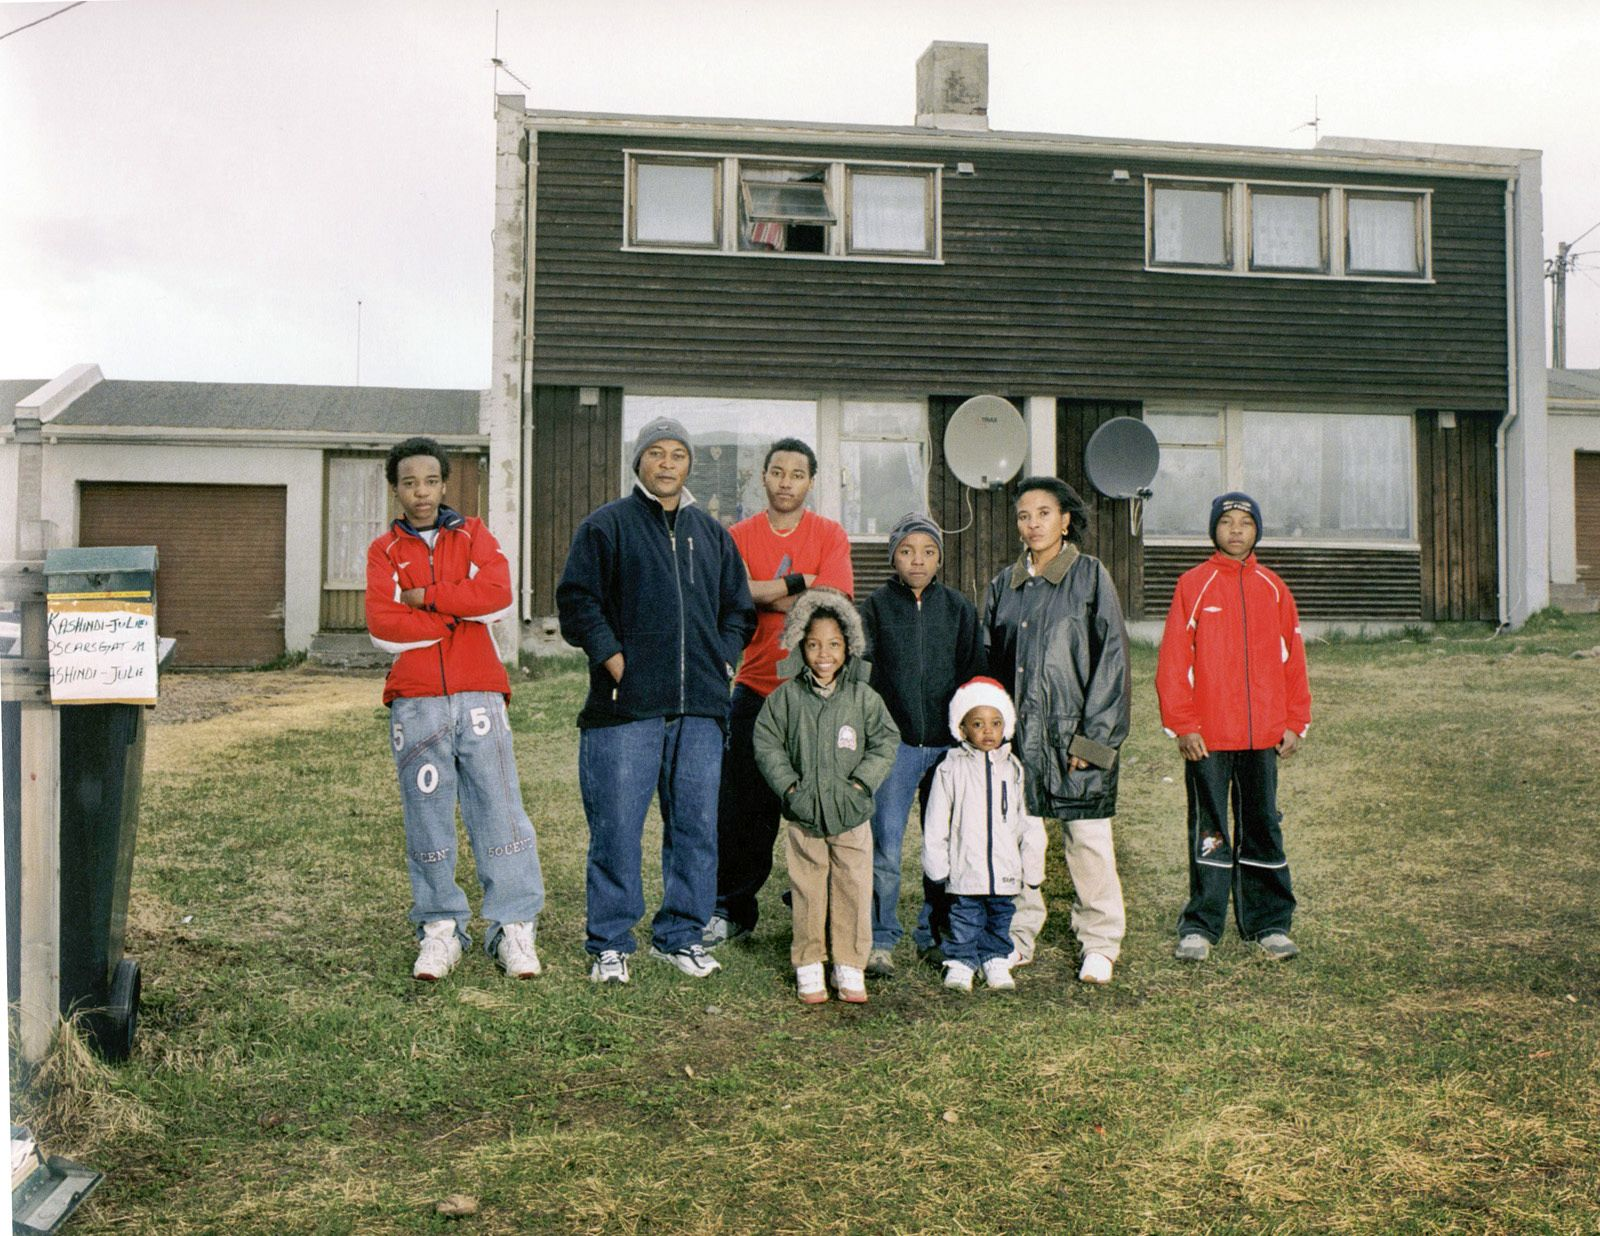 The Spirit of place? The Wilondja family in front of their house in Vadsø, northern Norway.